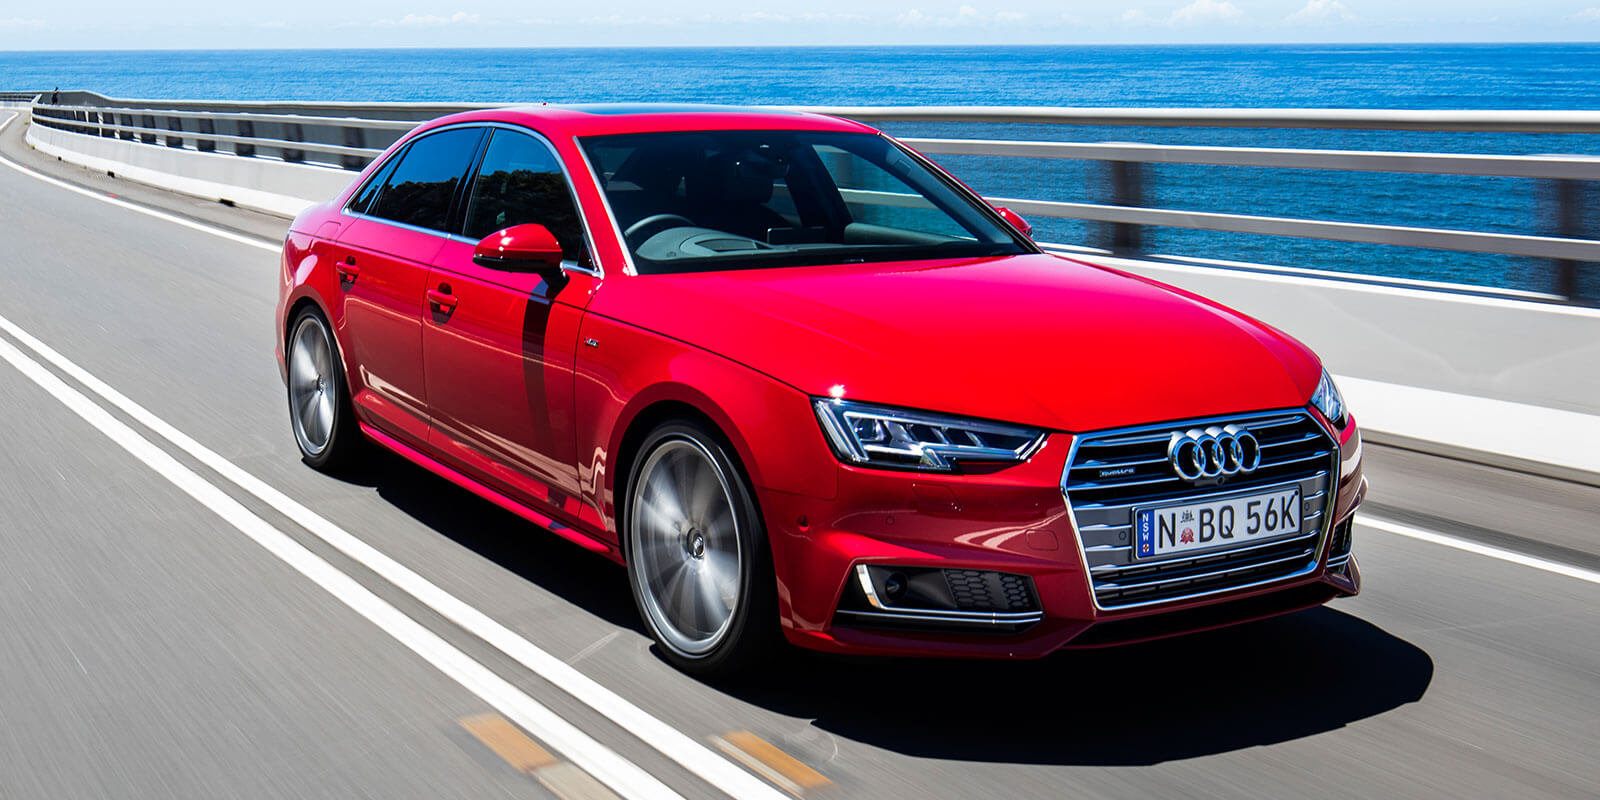 Roy Morgan Research finds that Audi owners are four times more likely to buy a new car within four years as the survey average. It also reports that less Audi drivers would buy the brand again compared with BMW and Mercedes-Benz.